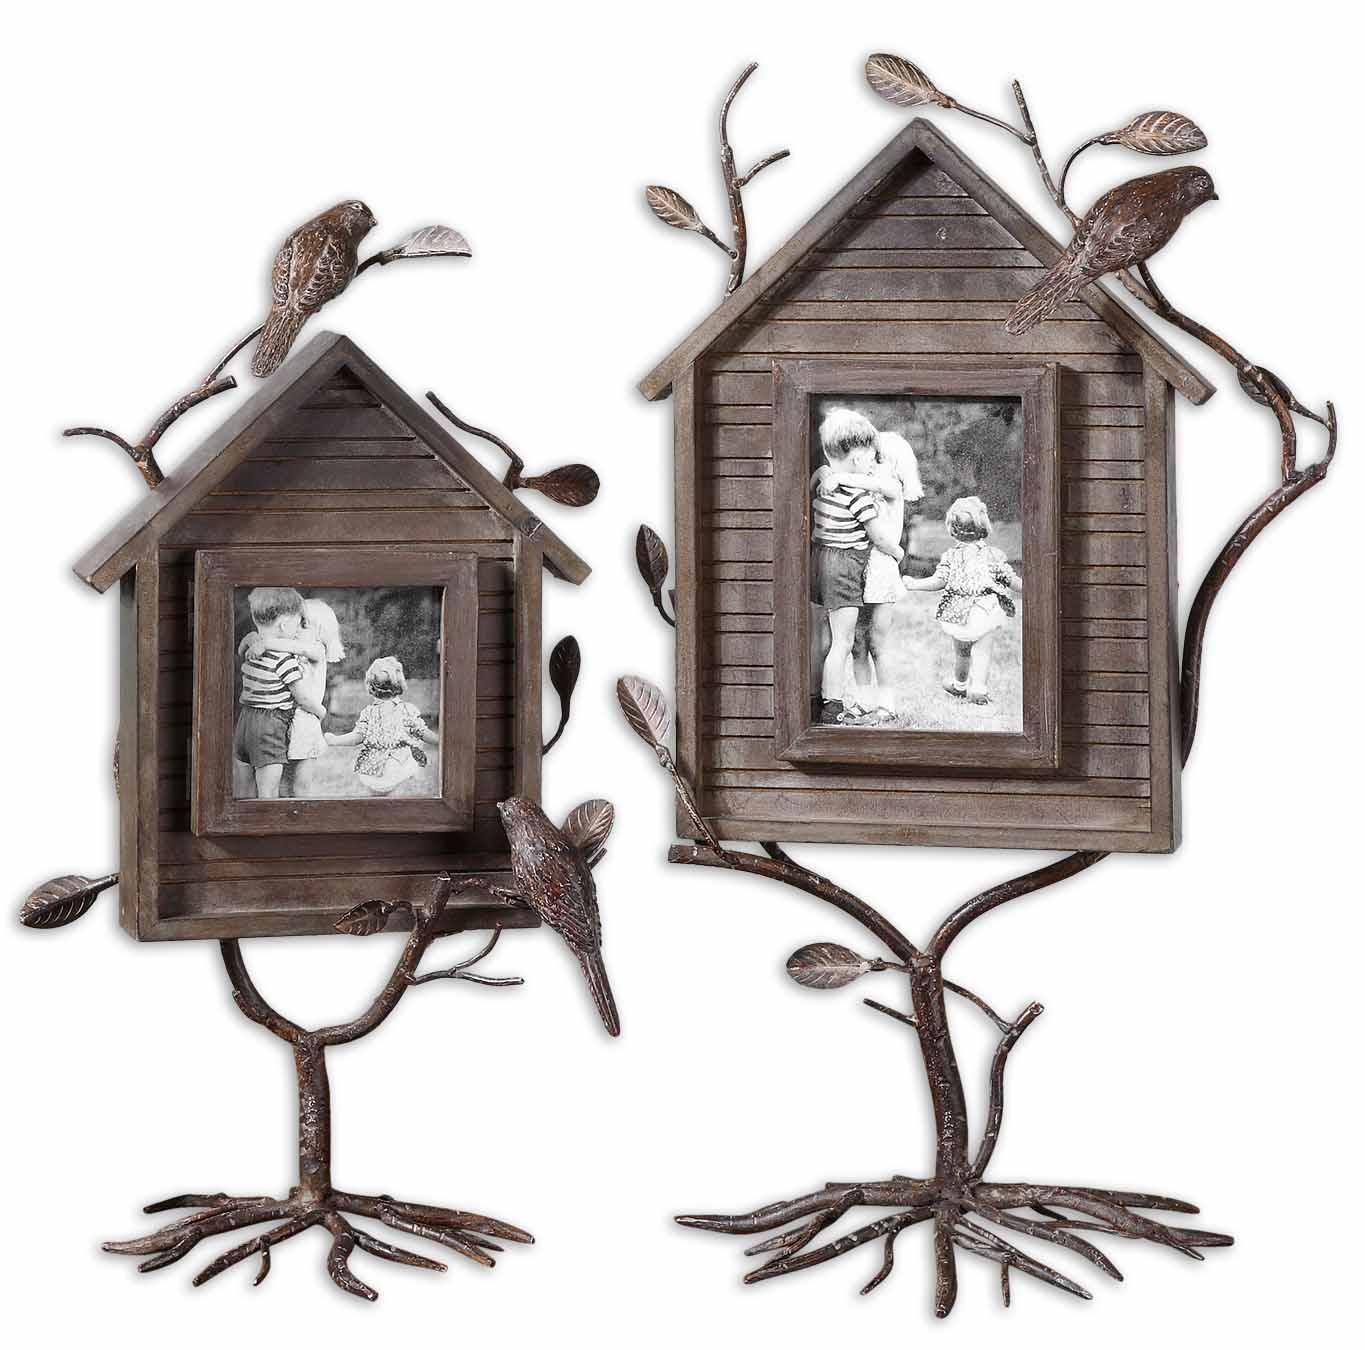 Uttermost 18528 Bird house photo frames set/2 (с дефектом) - фото 1